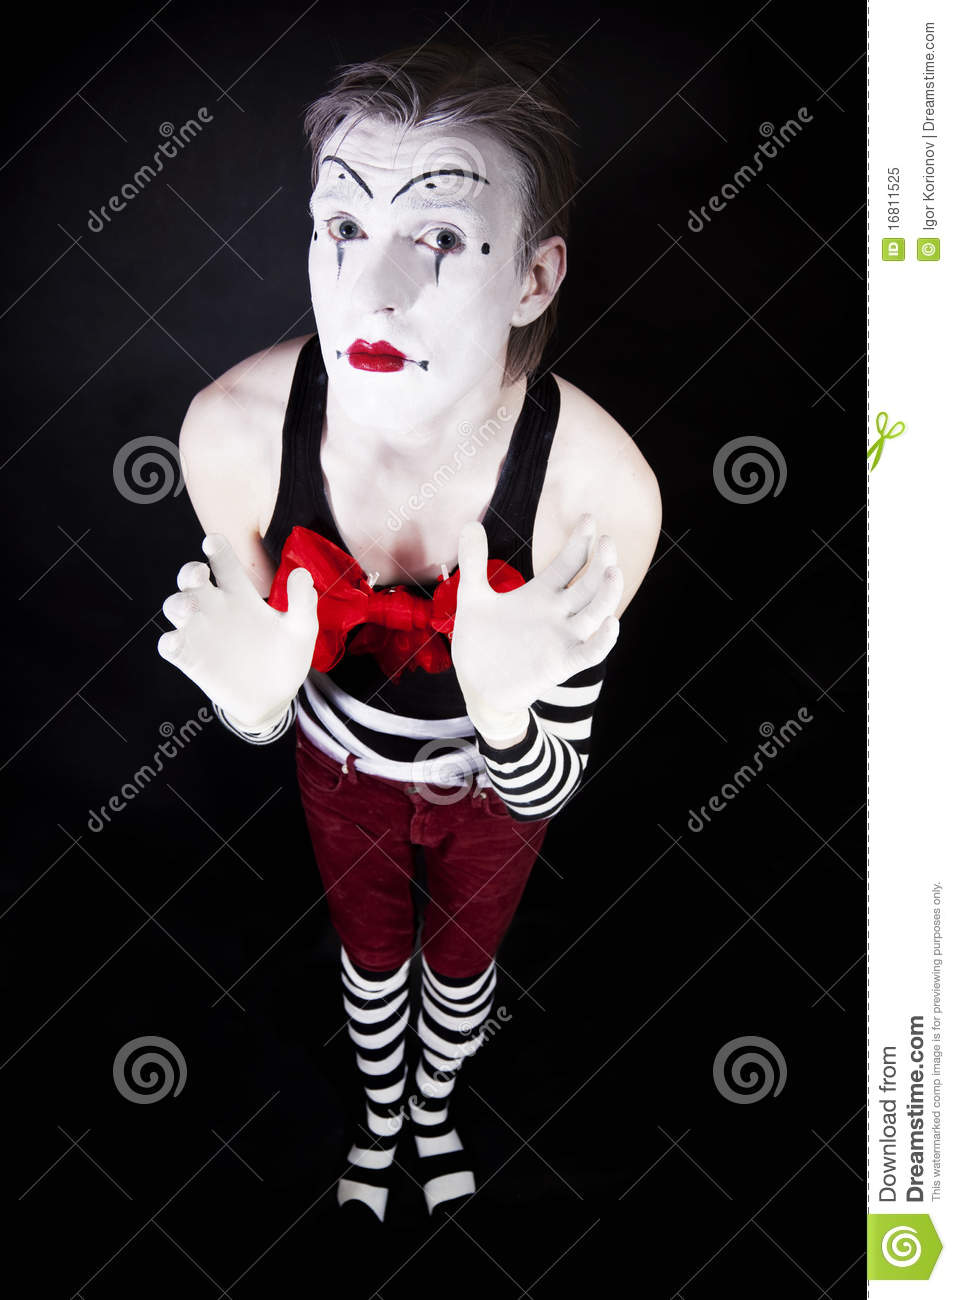 4ff00dc20fa Mime with a big red bow stock image. Image of gestures - 16811525